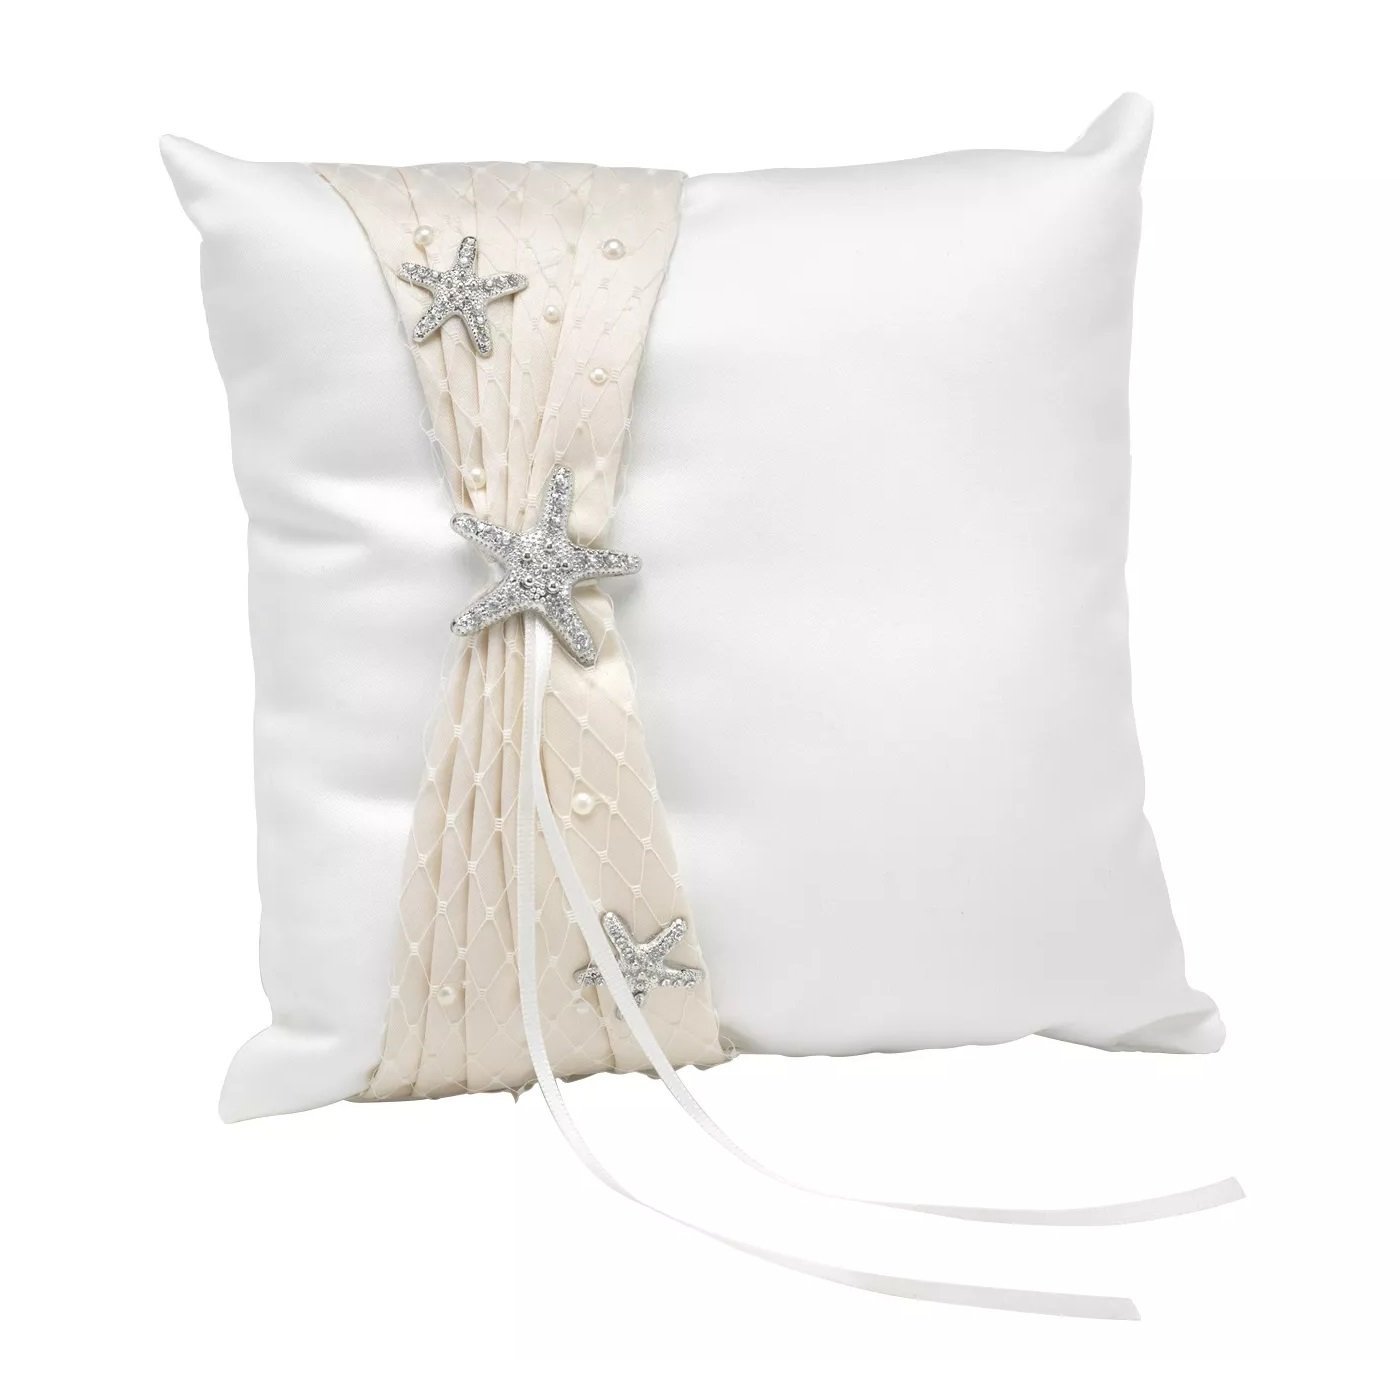 Destination-Romance-Wedding-Collection-Ring-Bearer-Pillow Beach Wedding Decorations & Coastal Wedding Decor